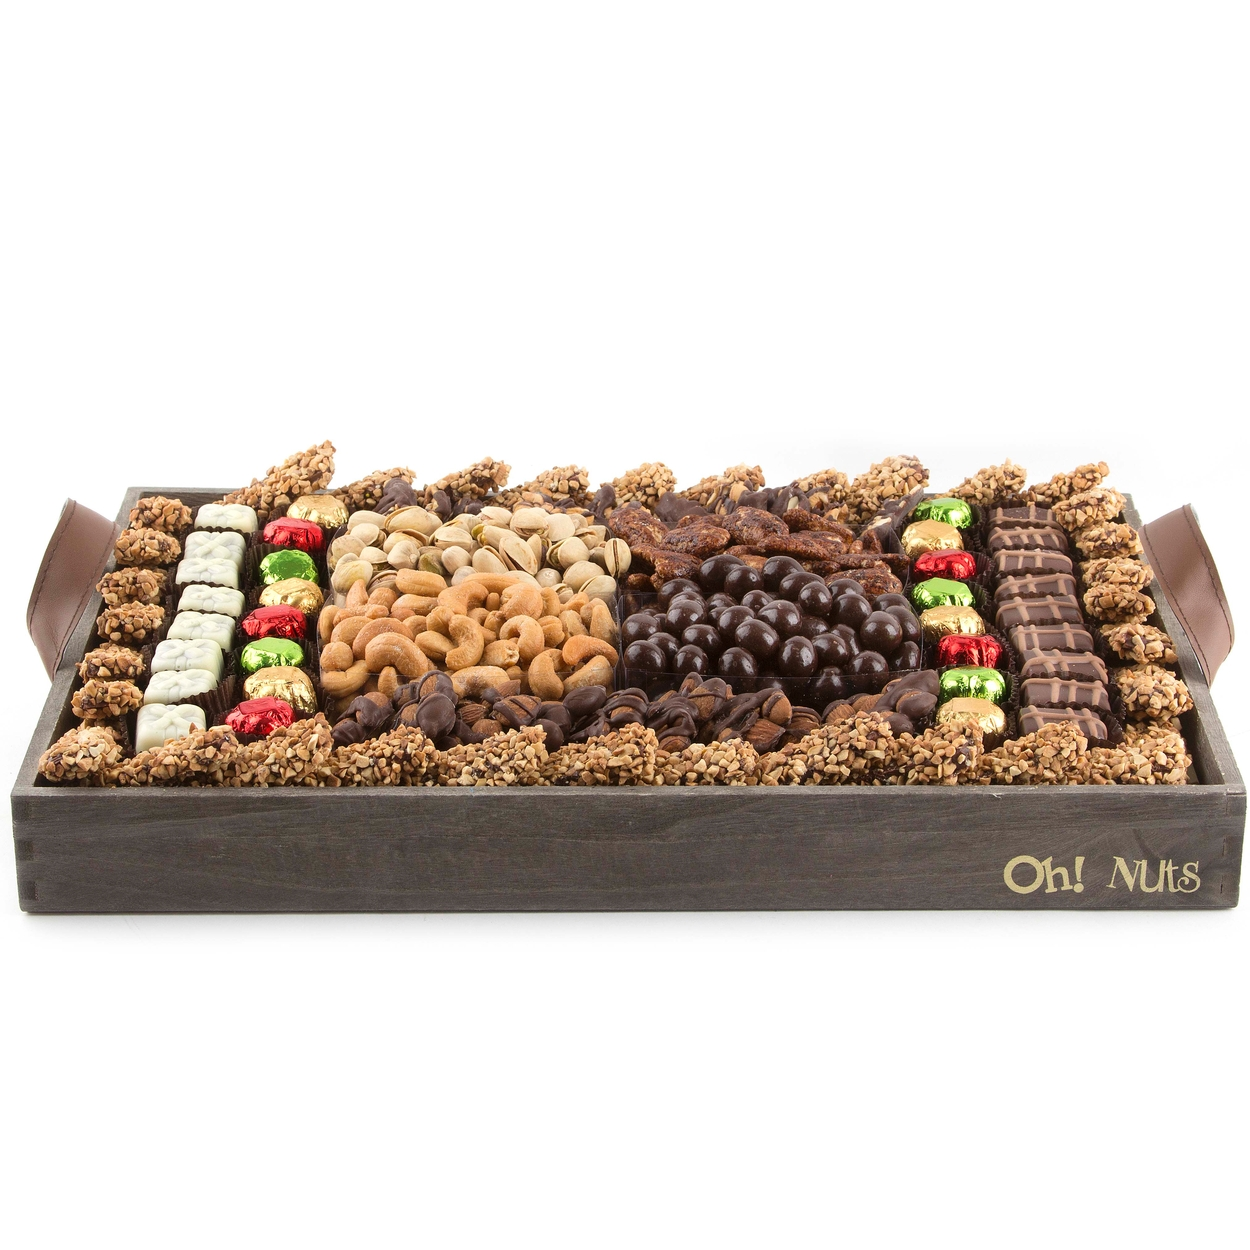 Oh Nuts Gourmet Signature Extra Large Christmas Gift Basket Filled with Nuts and Chocolates